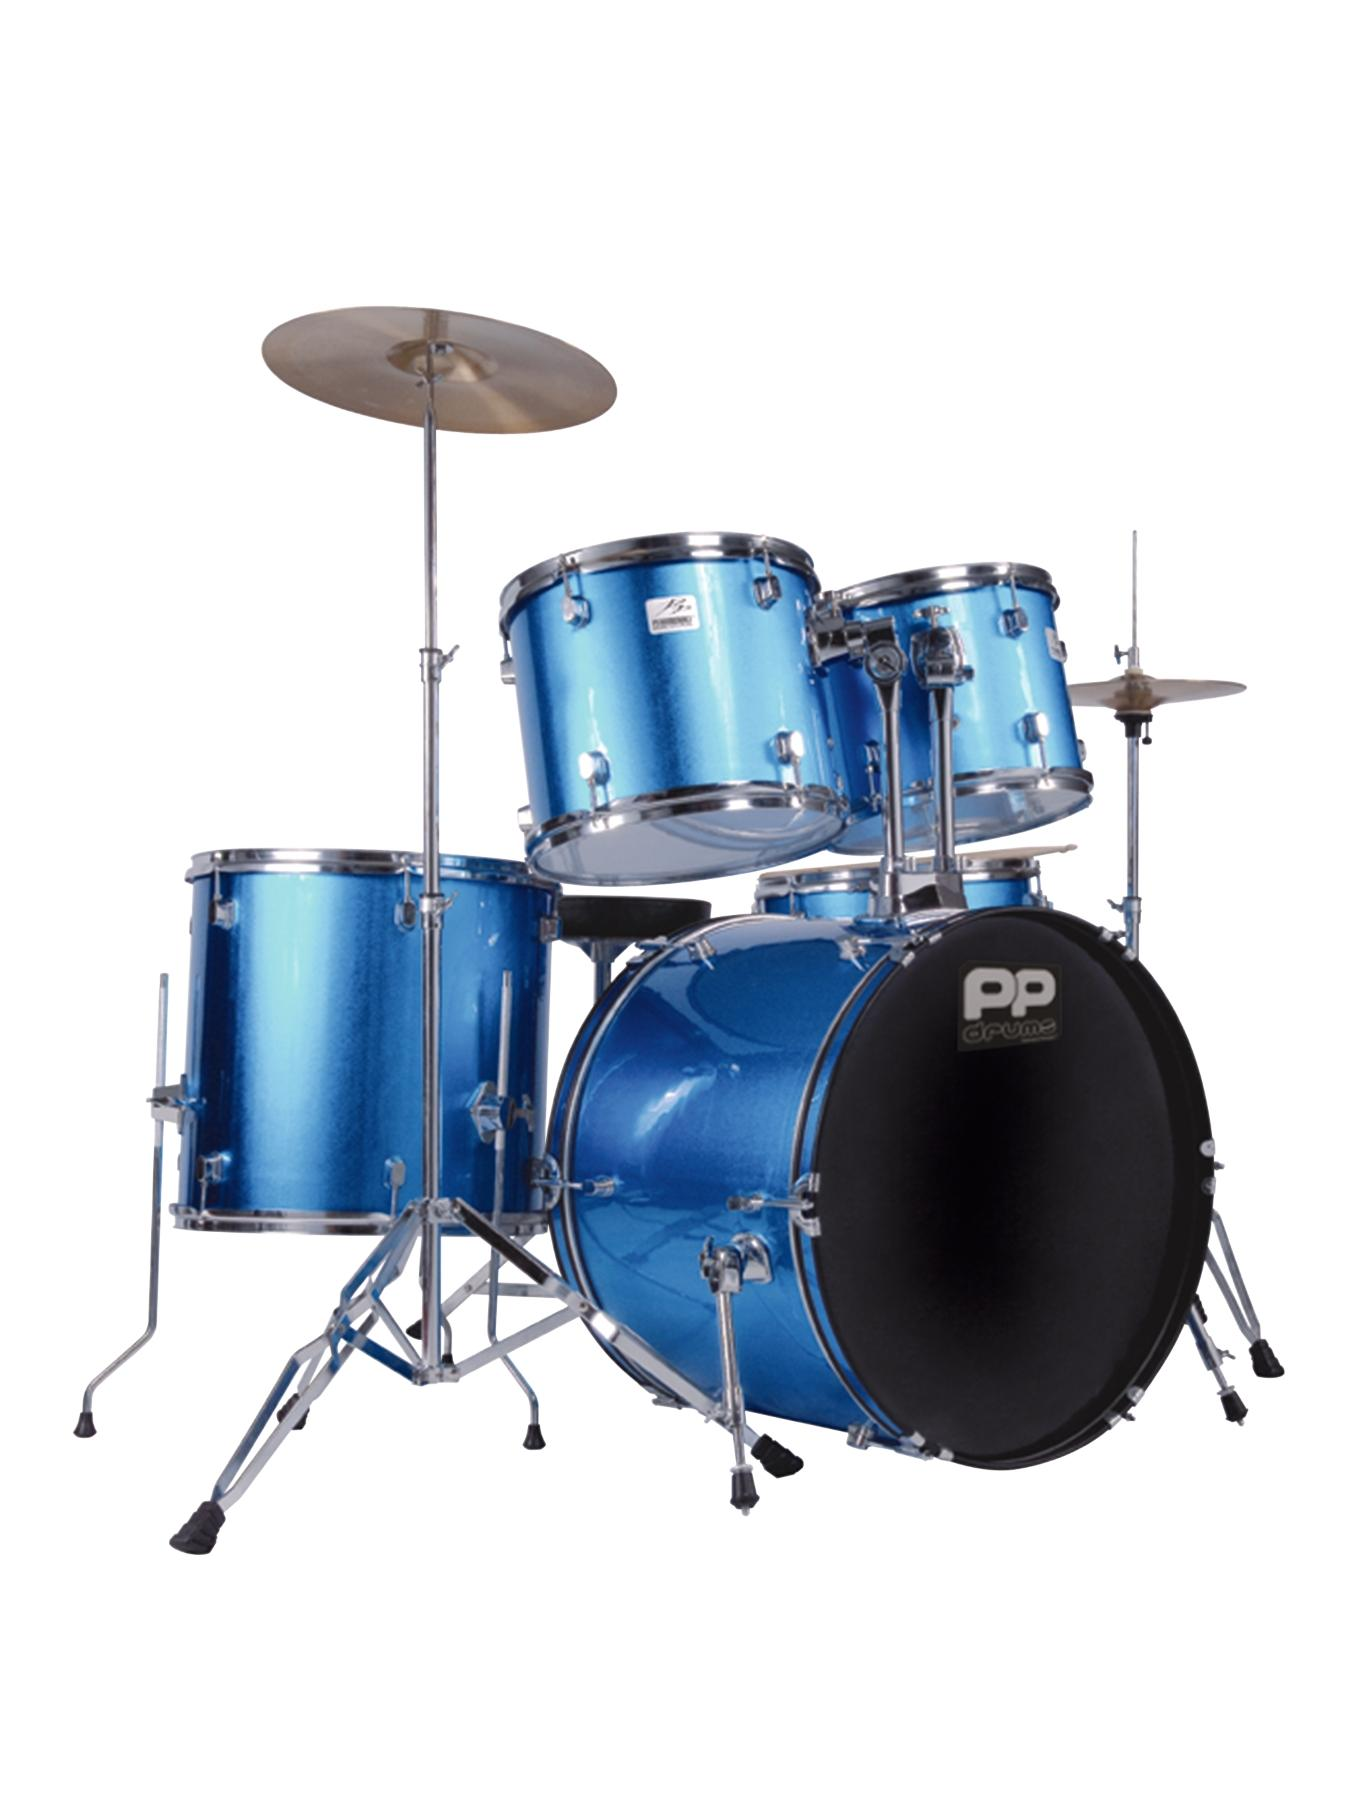 Full Size 5-piece Drum Kit Musical Instrument - Blue.